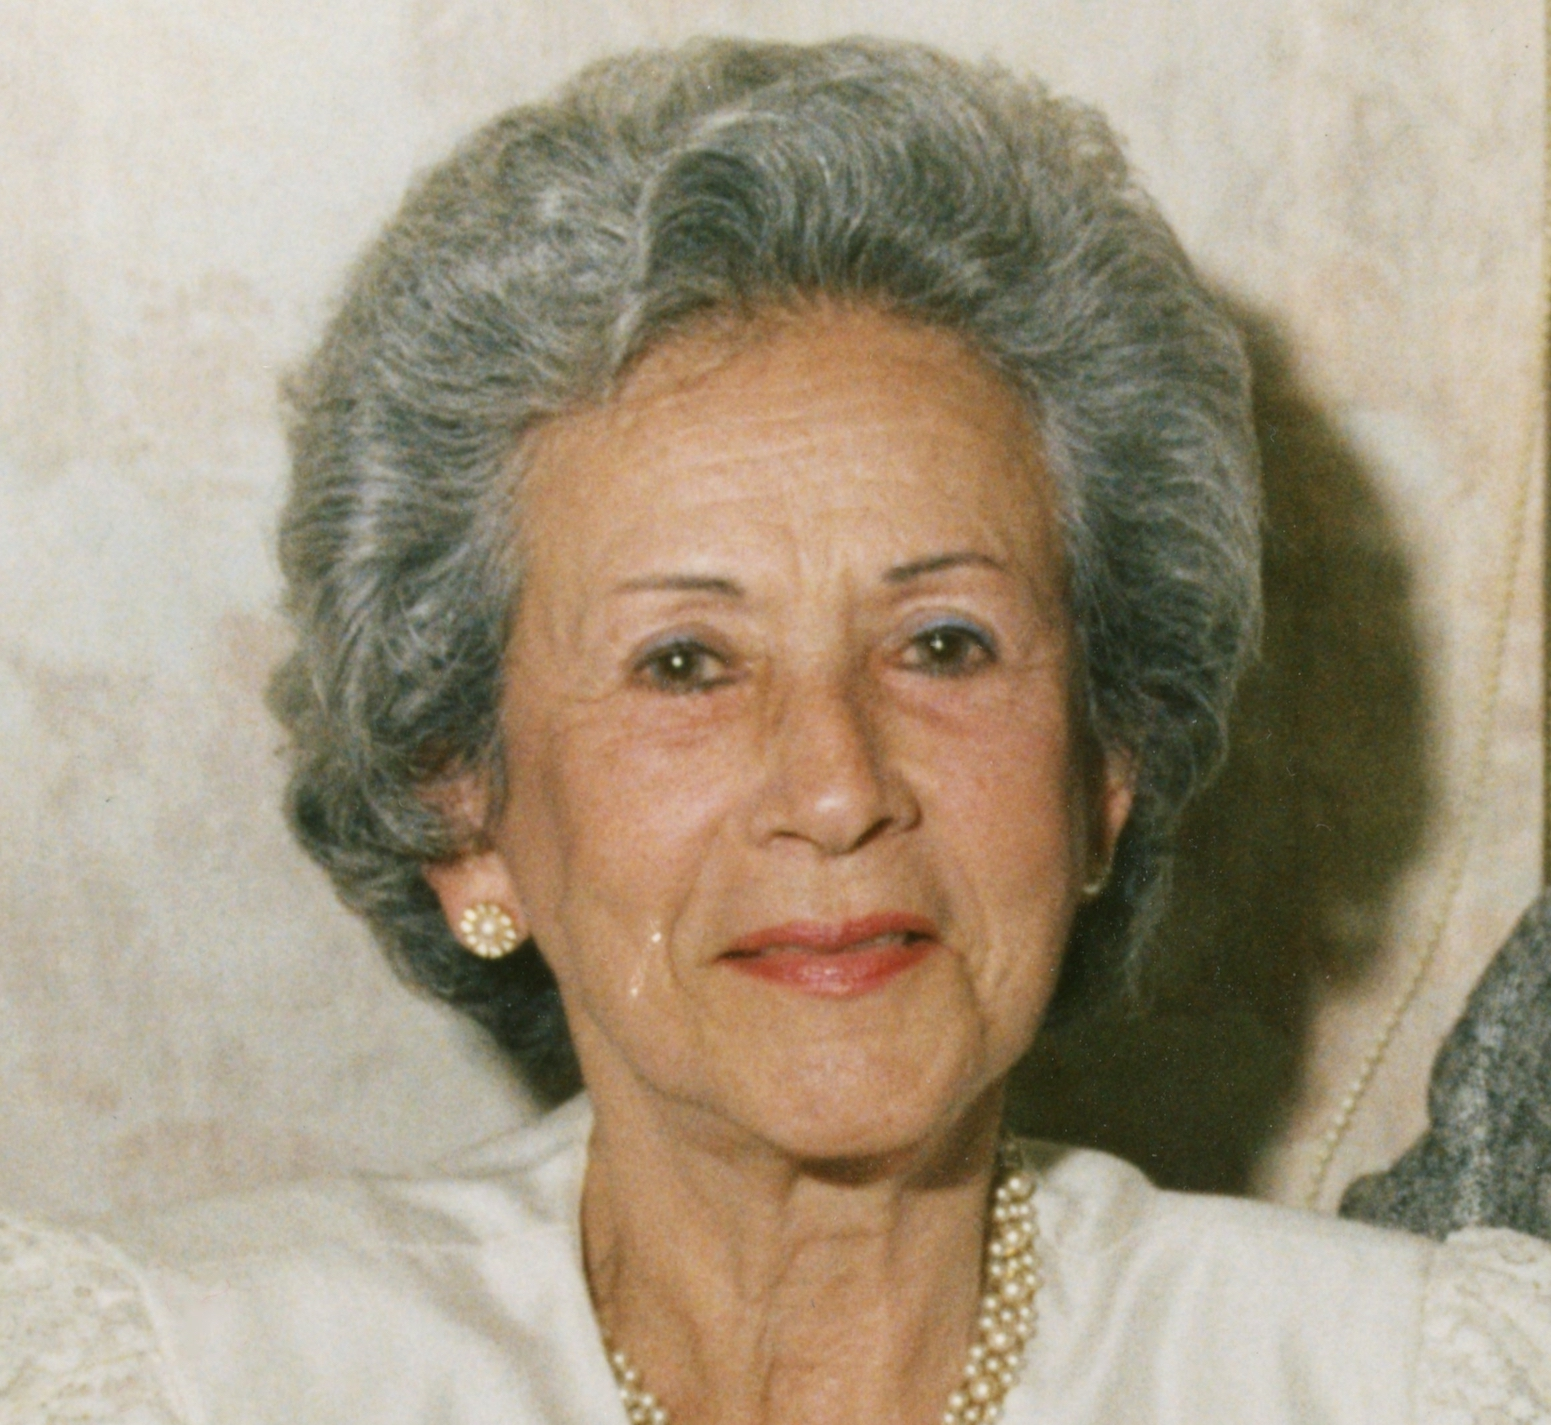 OBITUARY: Josephine Ponce de Leon Mingle